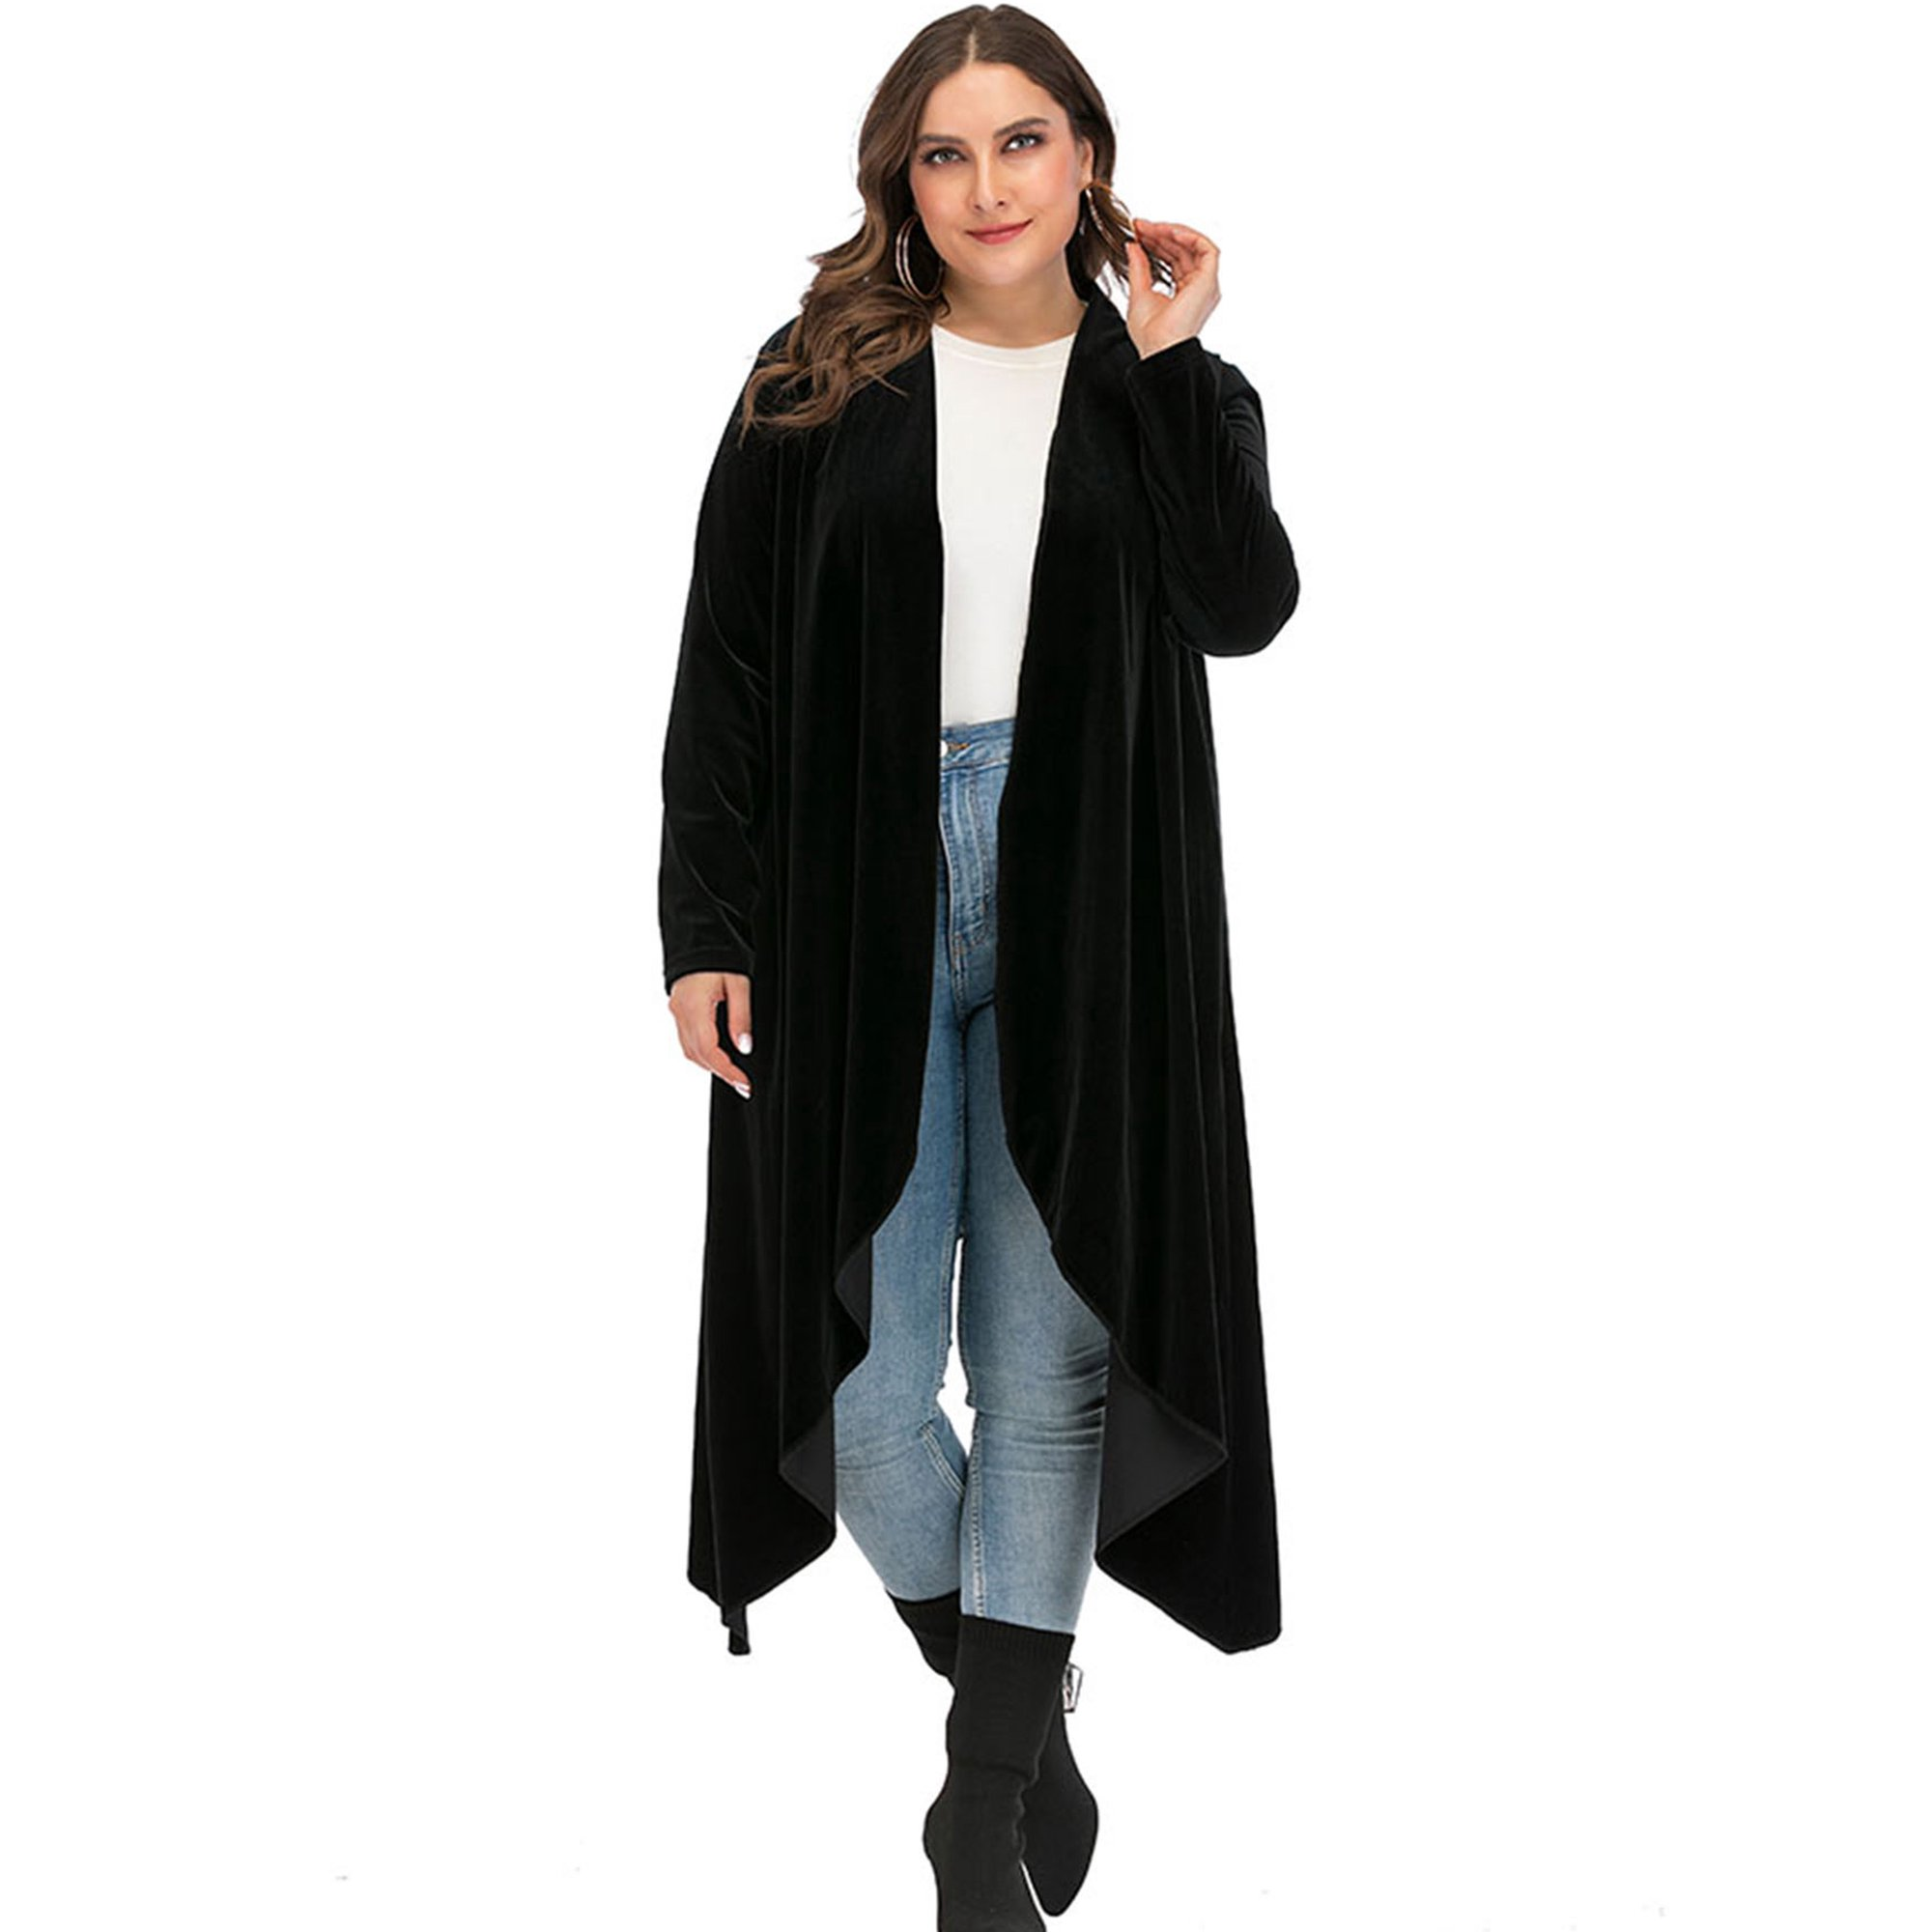 Plus Size Cardigan Lightweight Sweaters for Women Long Cardigan Duster Sweater Cover up Black Purple Kimono Cardigan Thin Tops